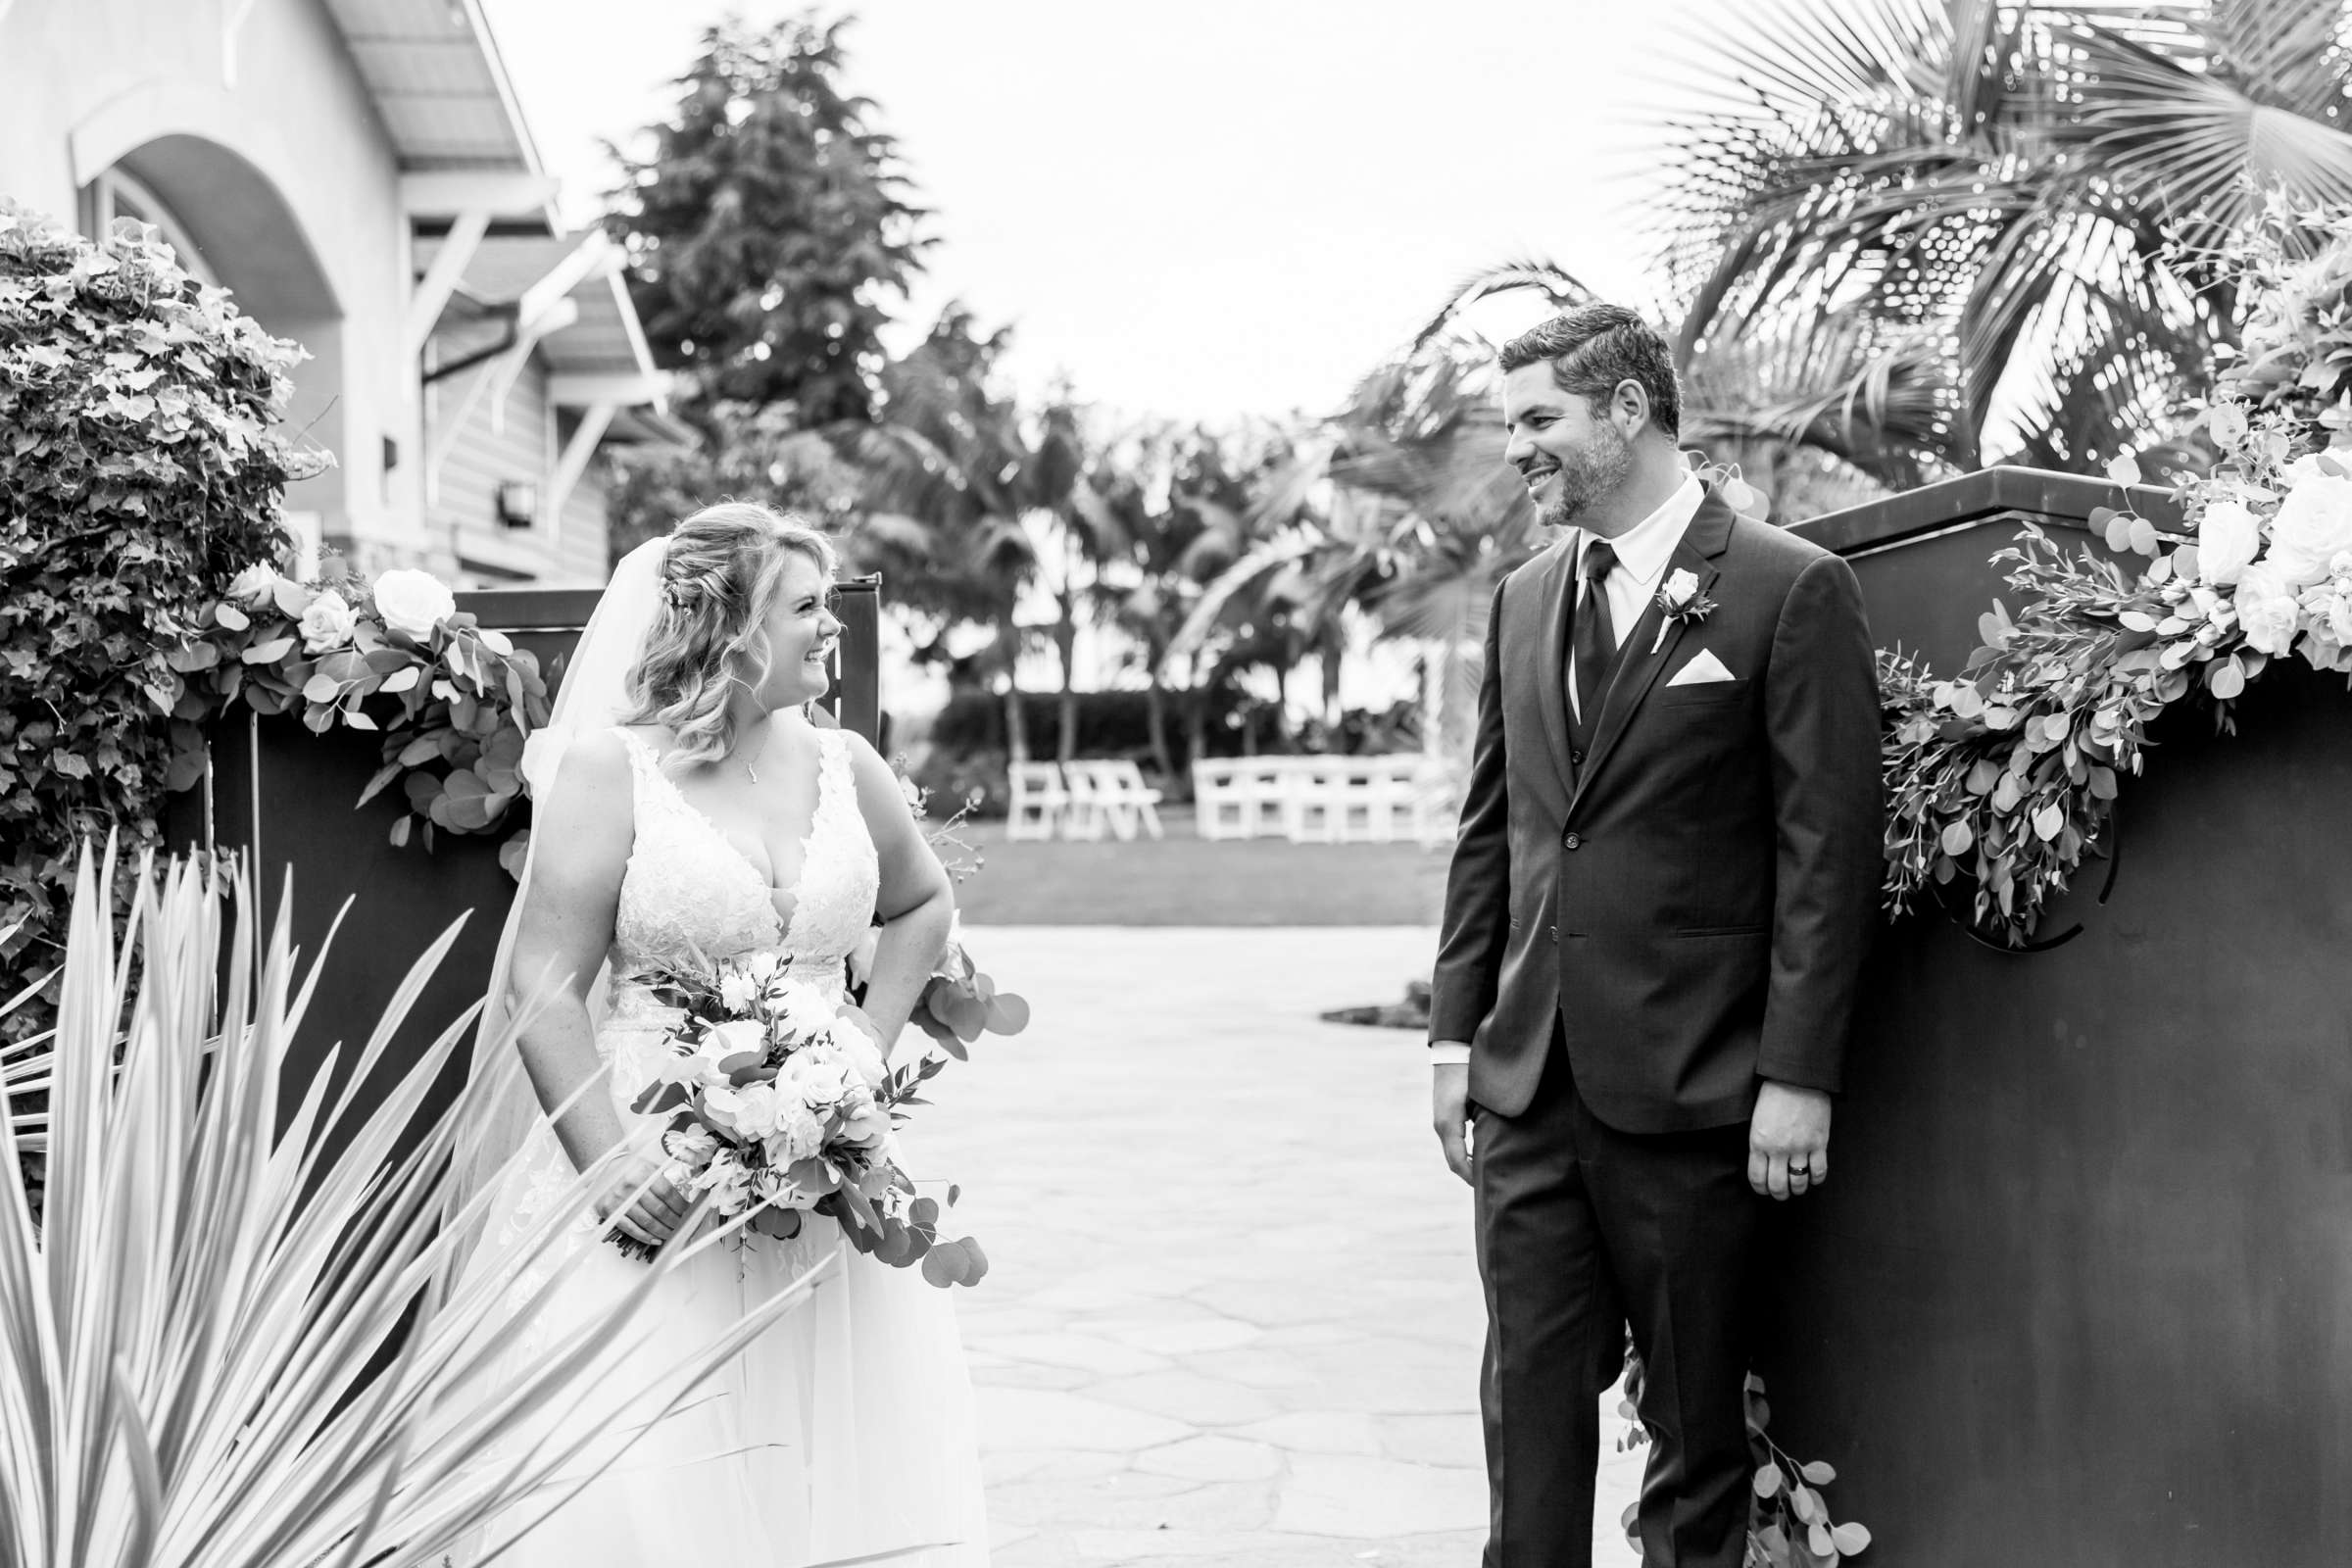 Cape Rey Carlsbad, A Hilton Resort Wedding, Michelle and Justin Wedding Photo #24 by True Photography